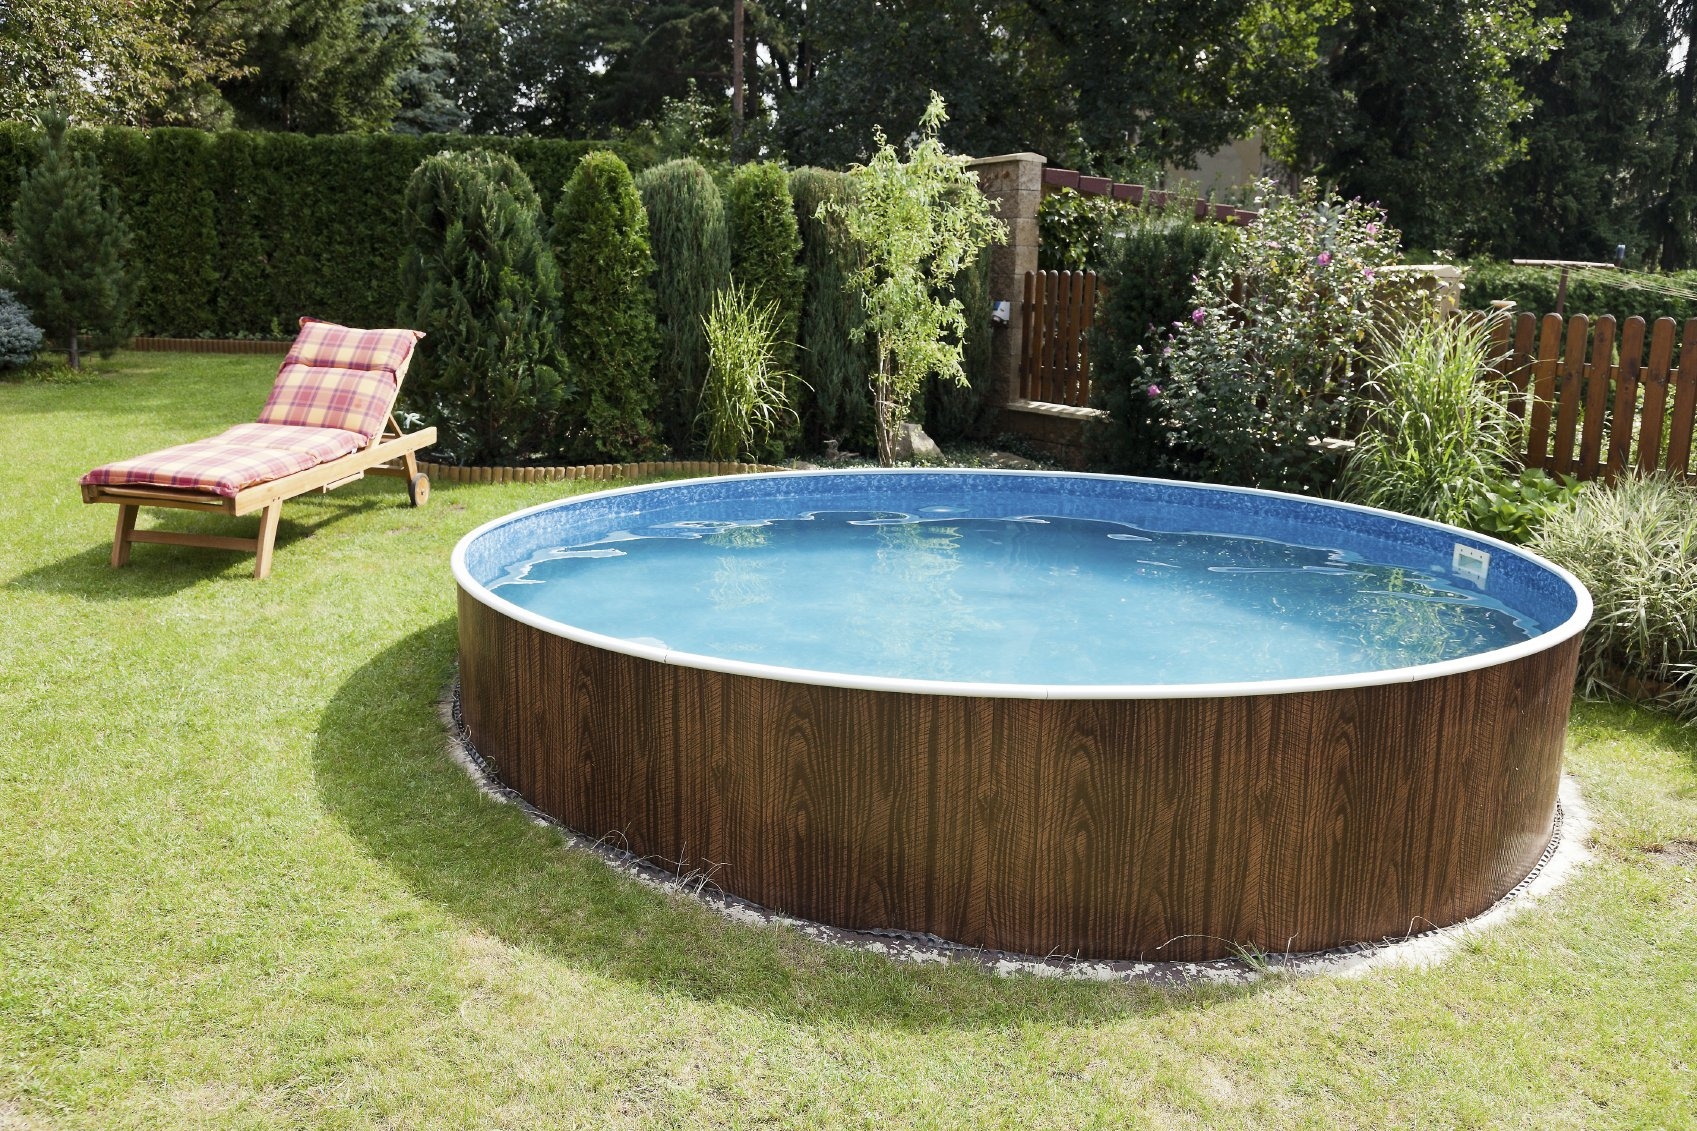 When getting an above-ground pool, you don't have to get fancy or build leveled decks. Sometimes a simple approach works well. This round above-ground pool stands alone, with a vintage wood panel look.